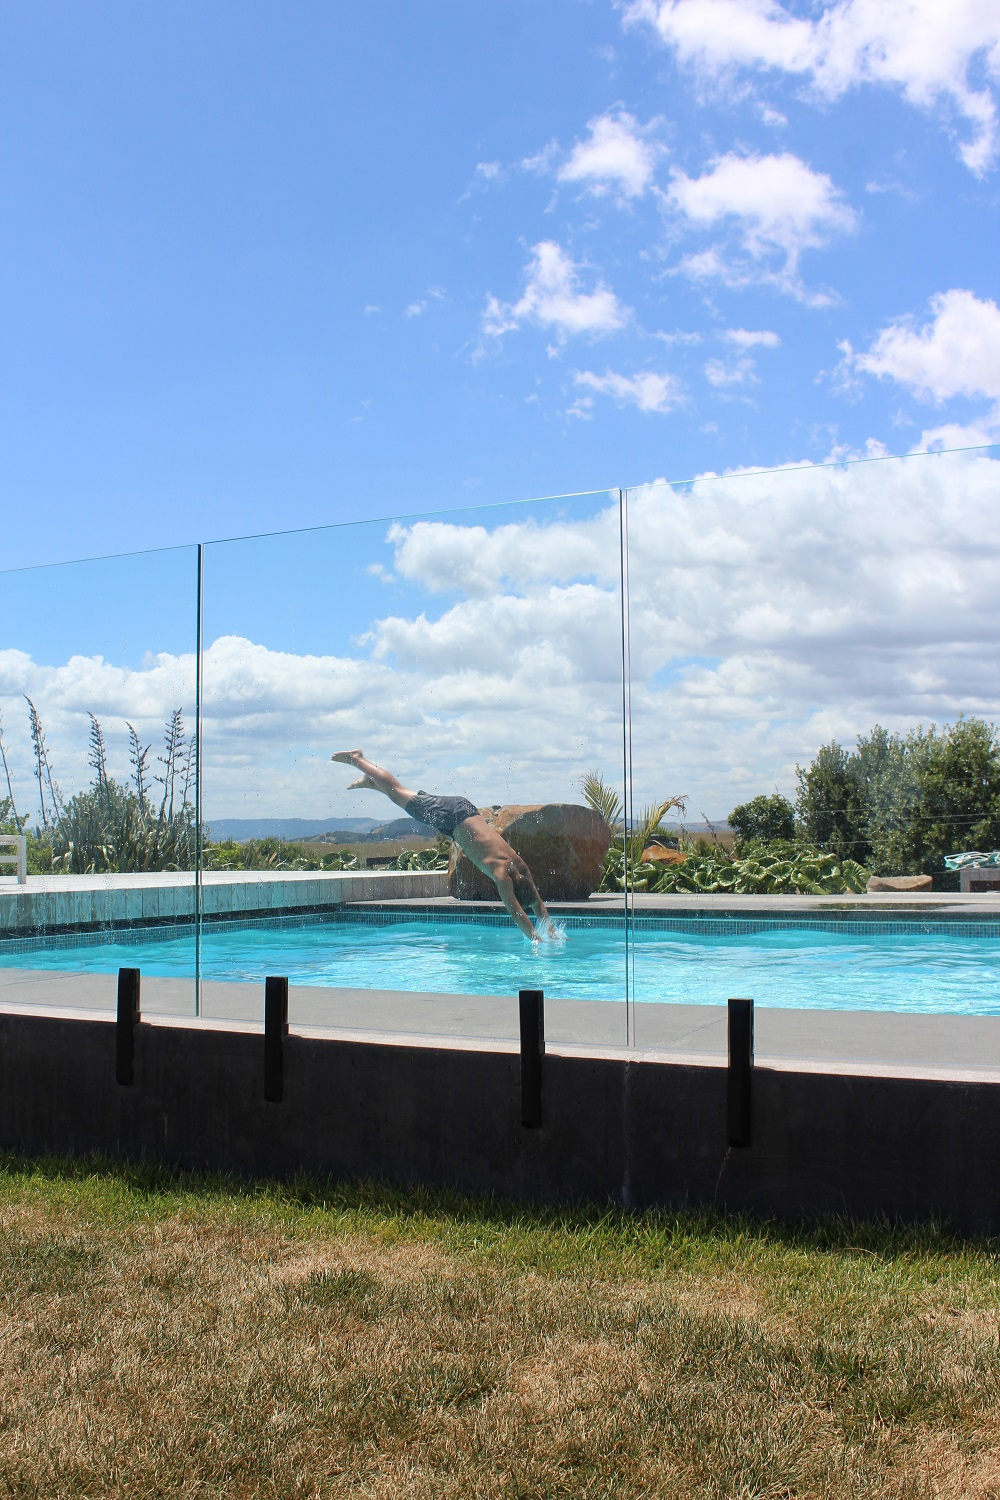 Clear view of swimmers